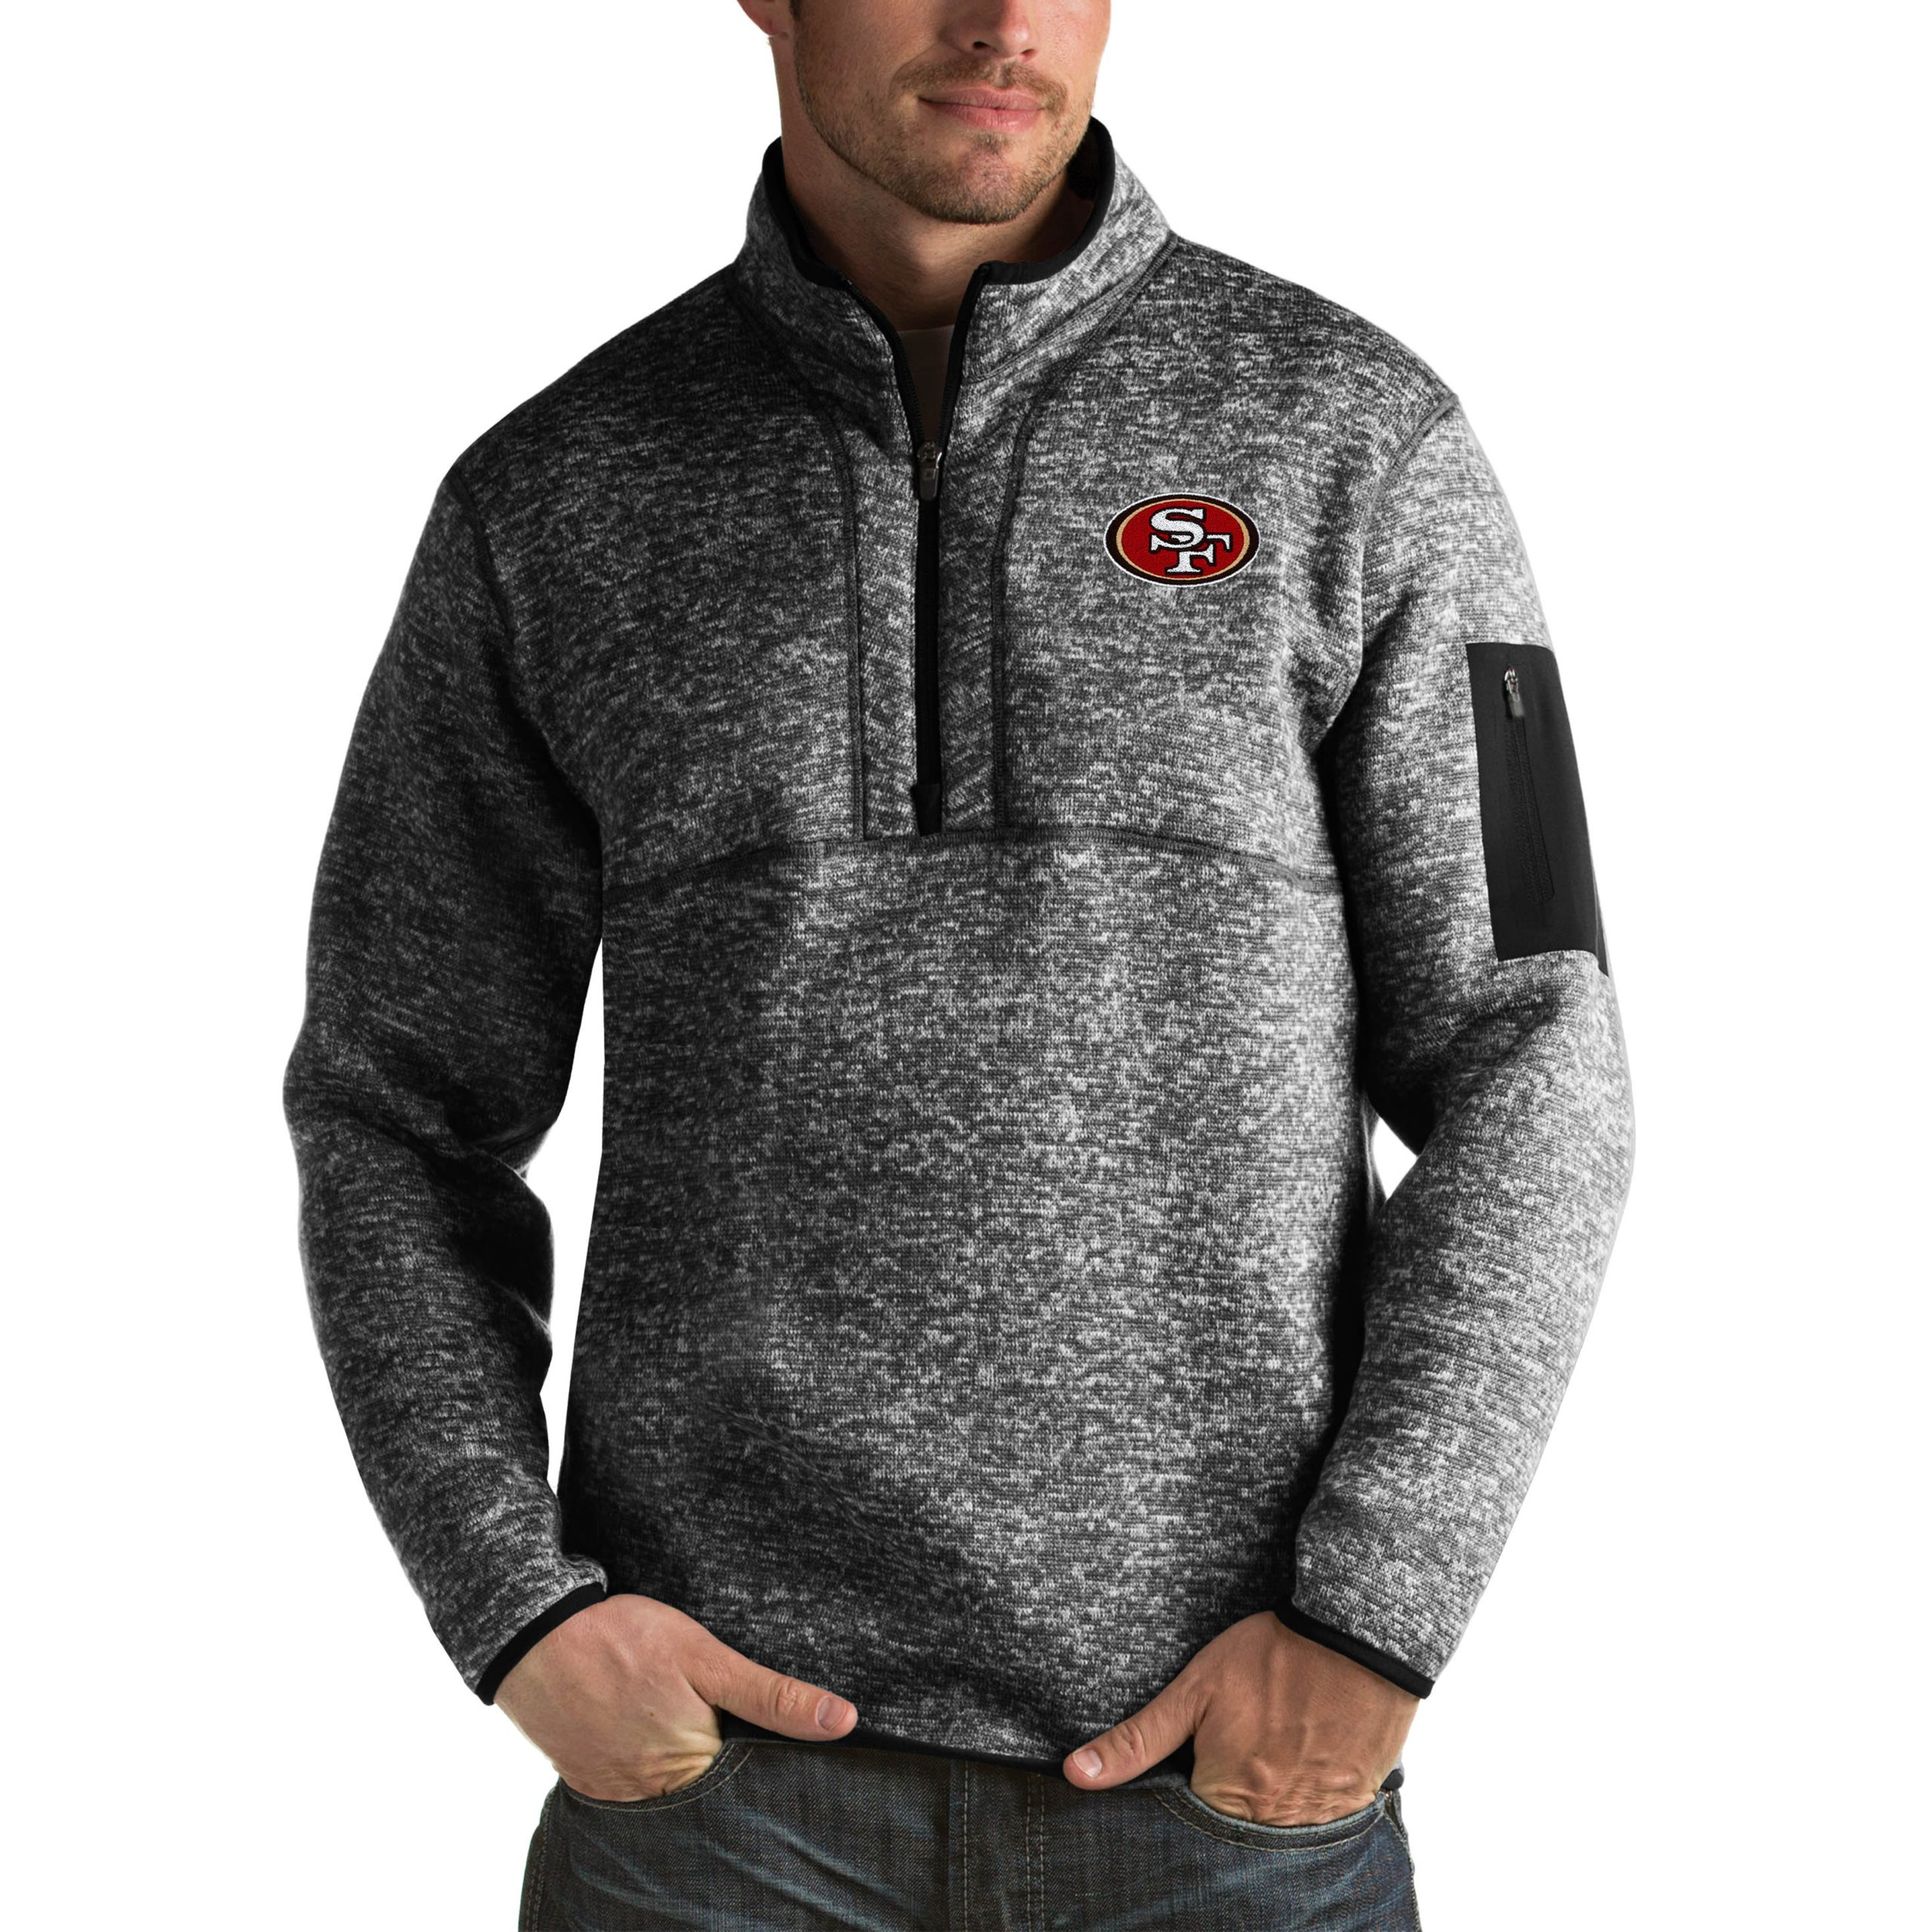 San Francisco 49ers Antigua Fortune Big & Tall Quarter-Zip Pullover Jacket - Heather Black